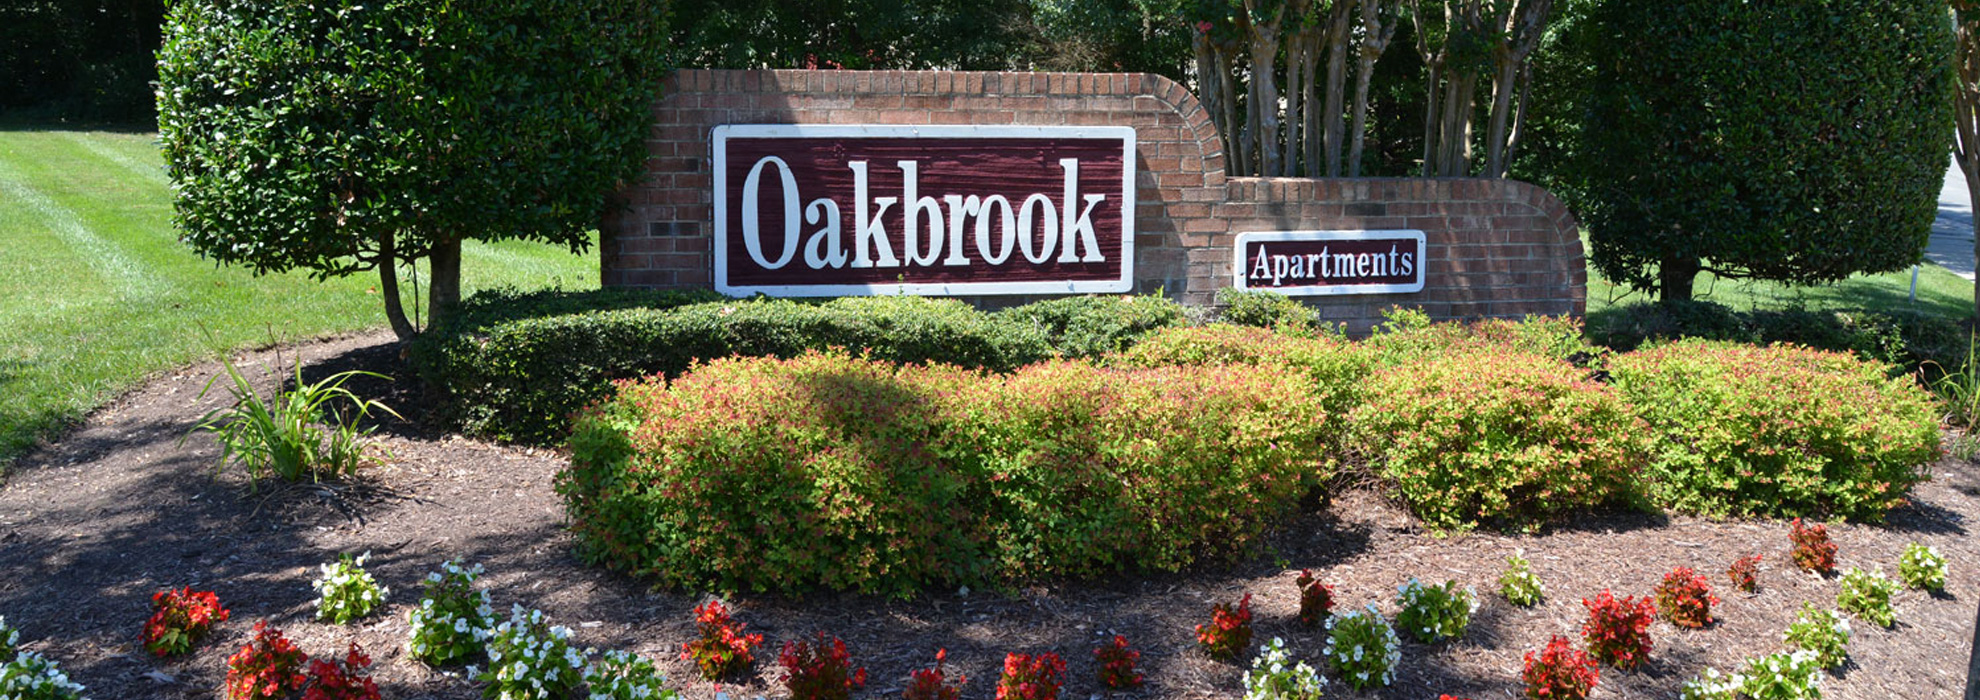 Oakbrook Apartments